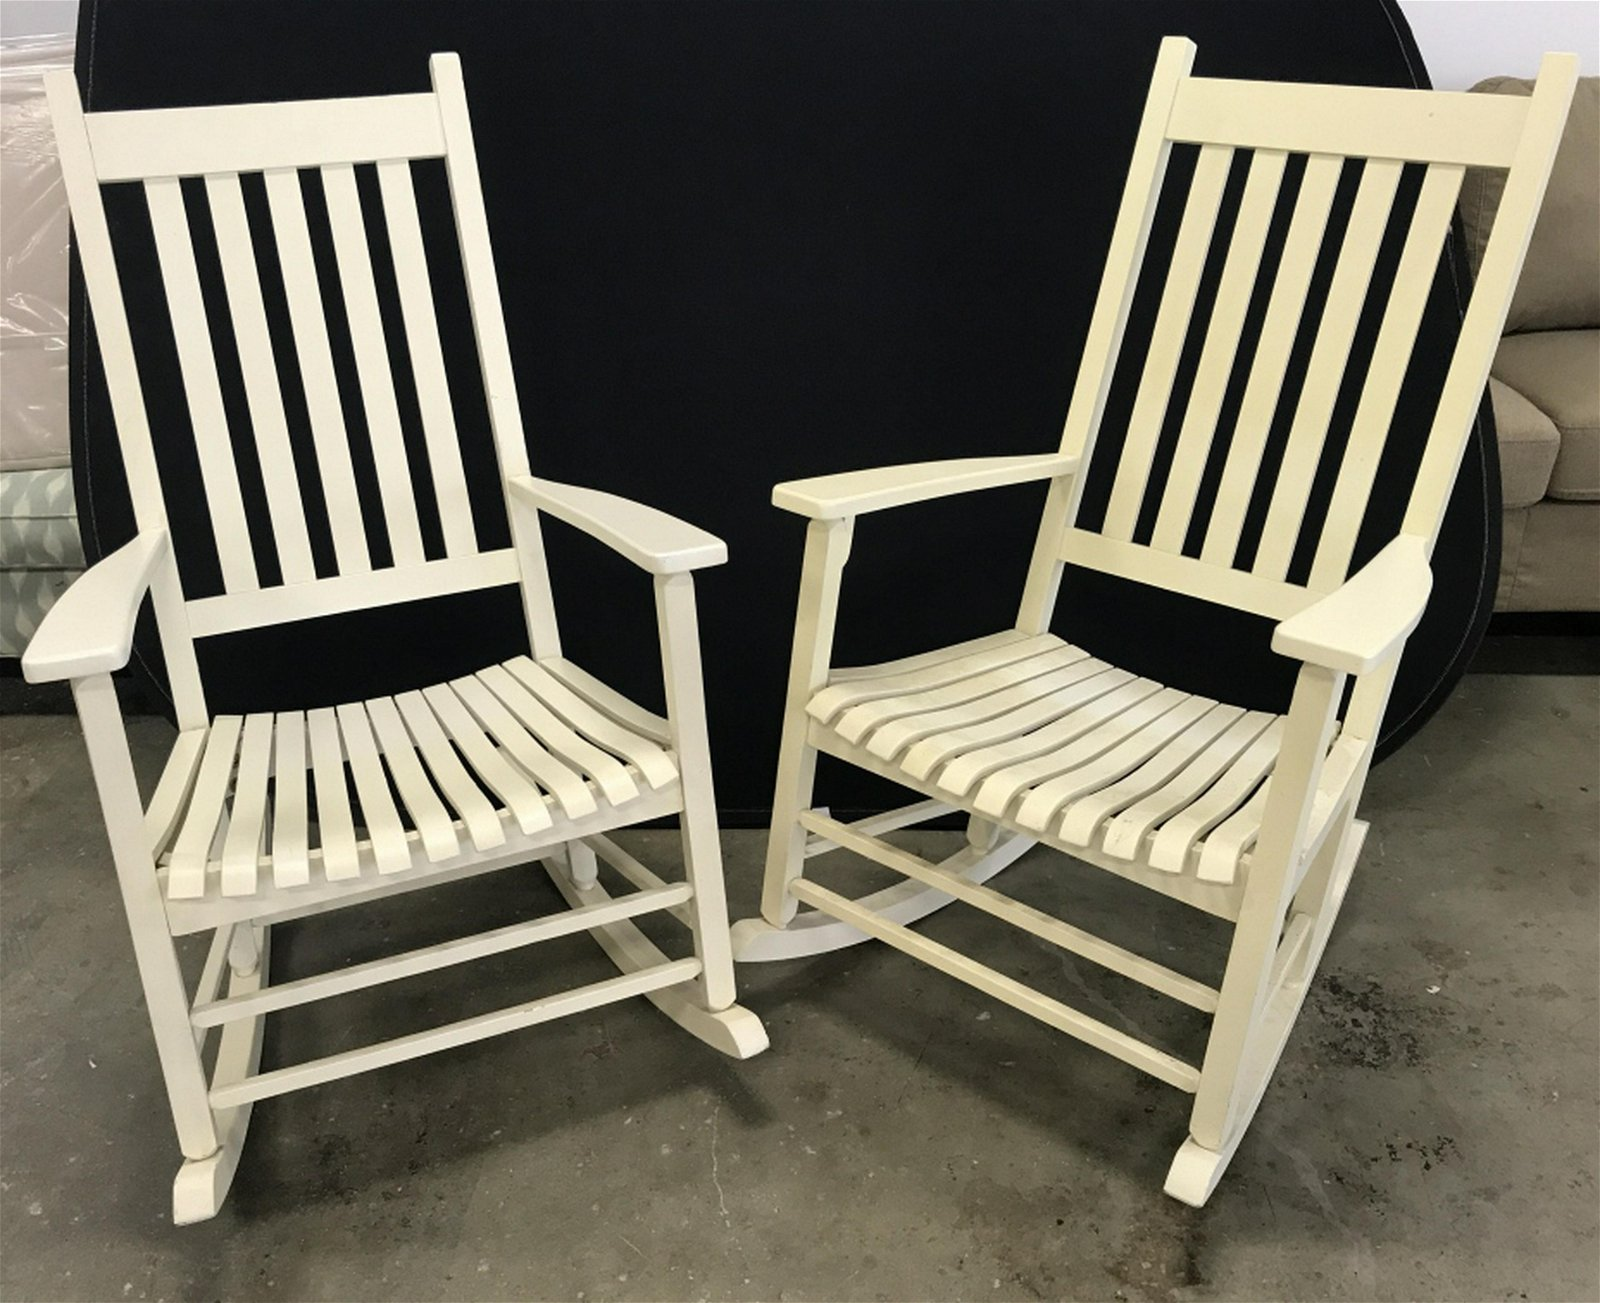 Pair Painted Wooden Rocking Chairs Rocking chairs are